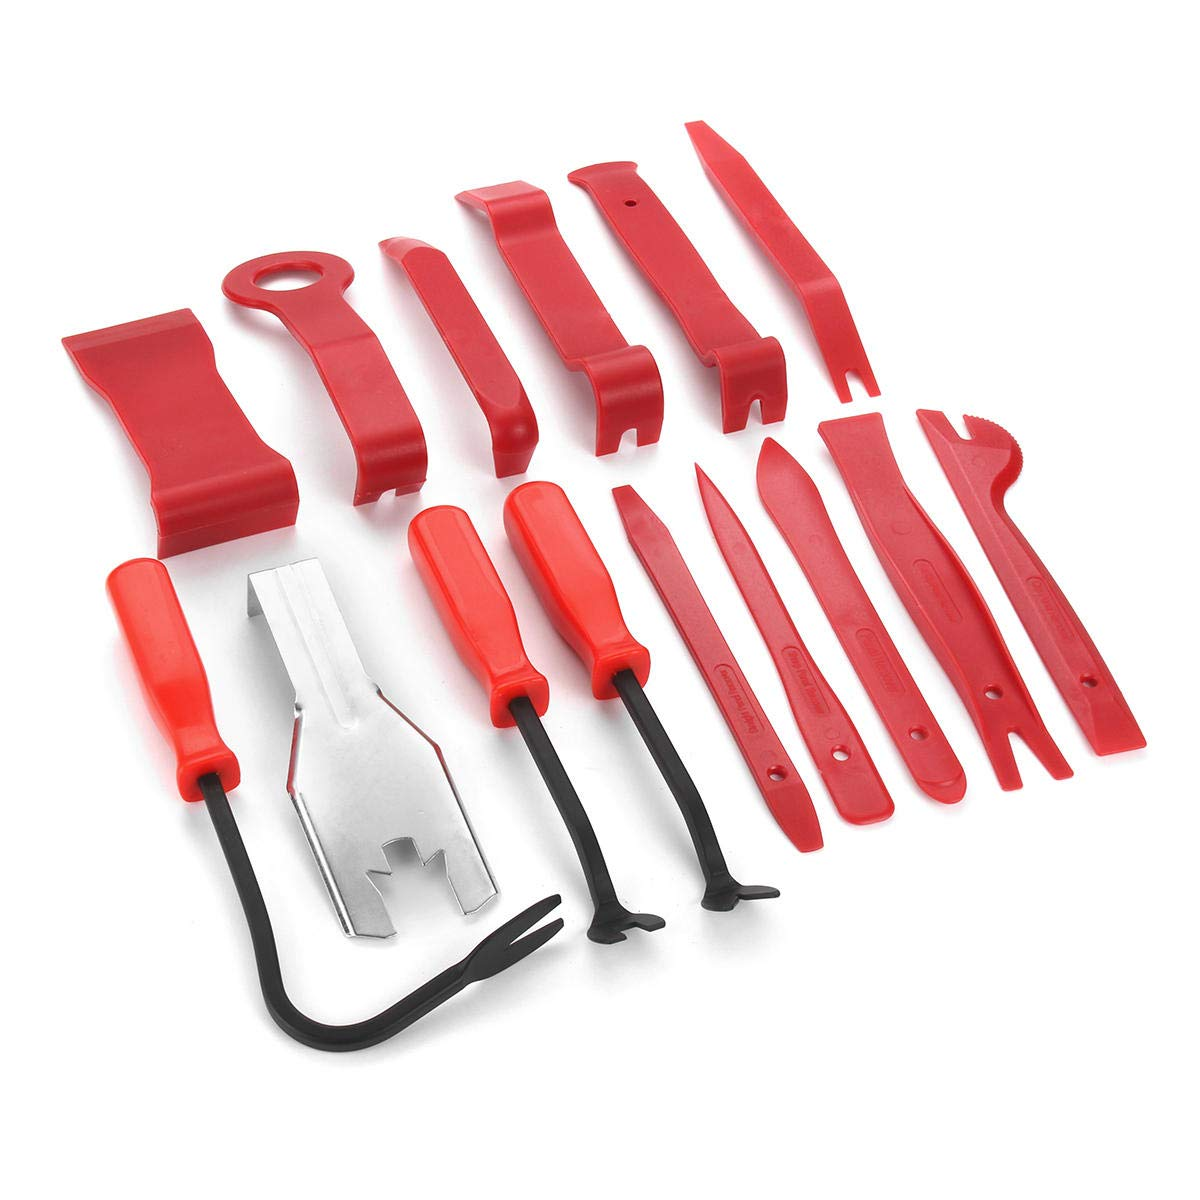 Anddoa 15pcs Meter Door Molding Remover Panel Trim Clip Removal Tools Kit Red Set by Anddoa (Image #4)